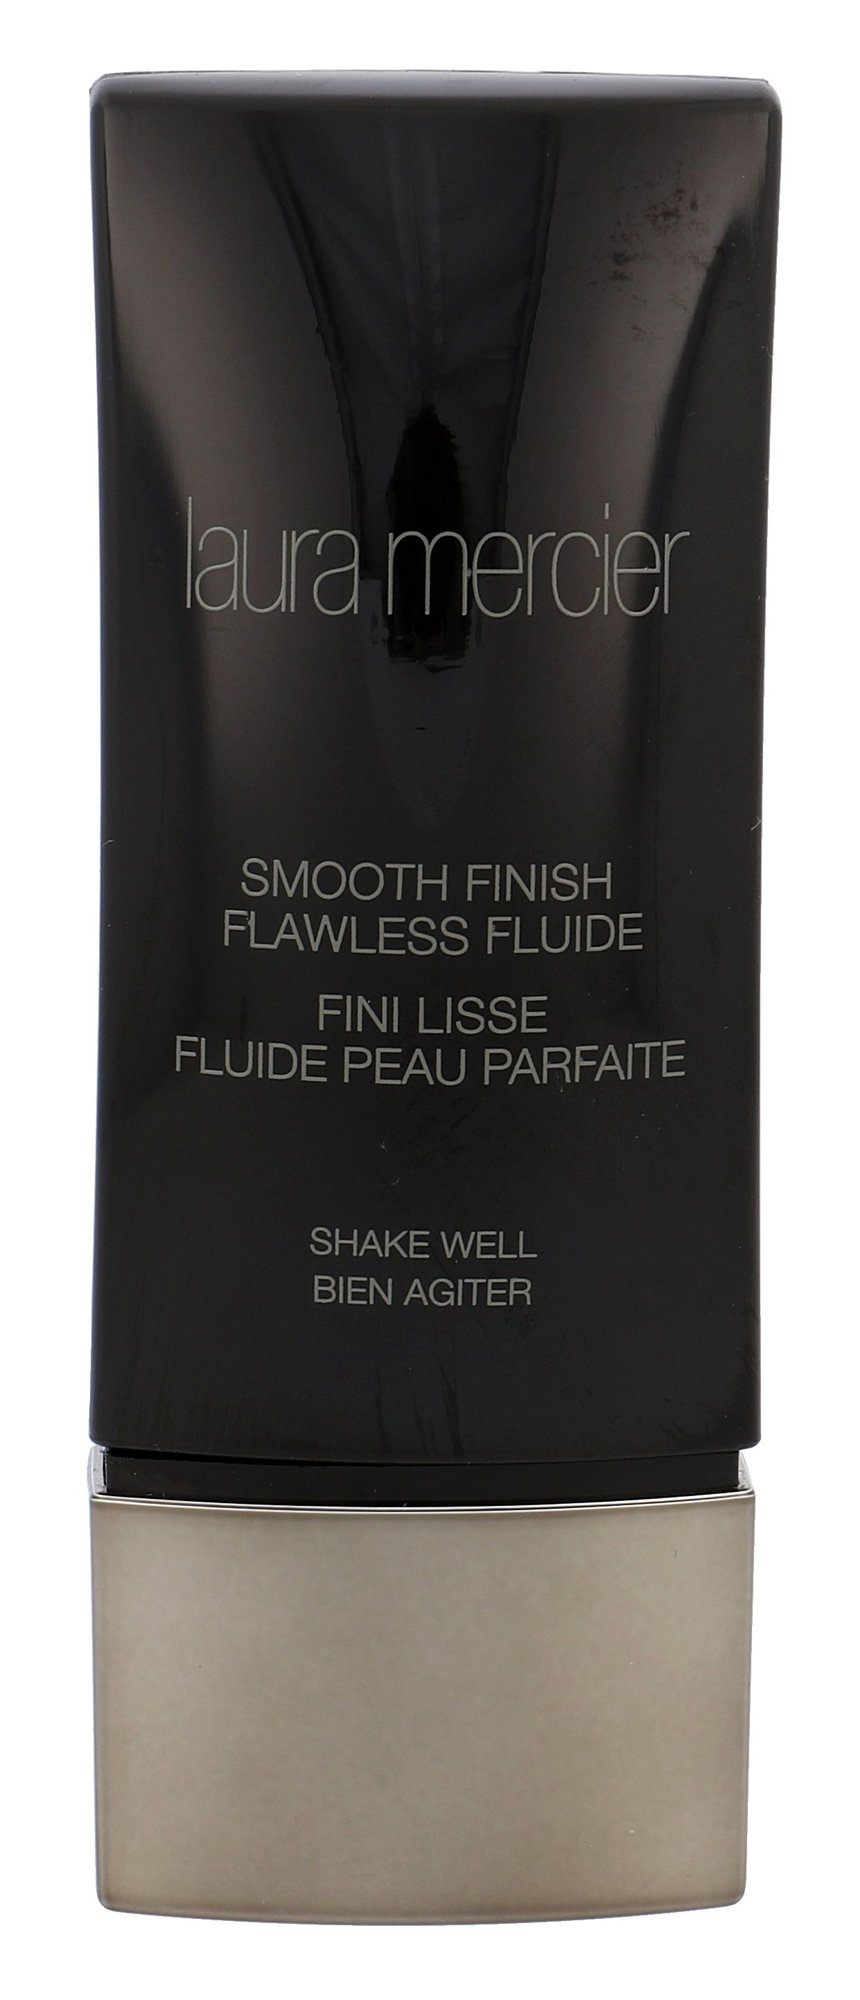 Laura Mercier Smooth Finish Flawless Fluide Cosmetic 30ml Linen